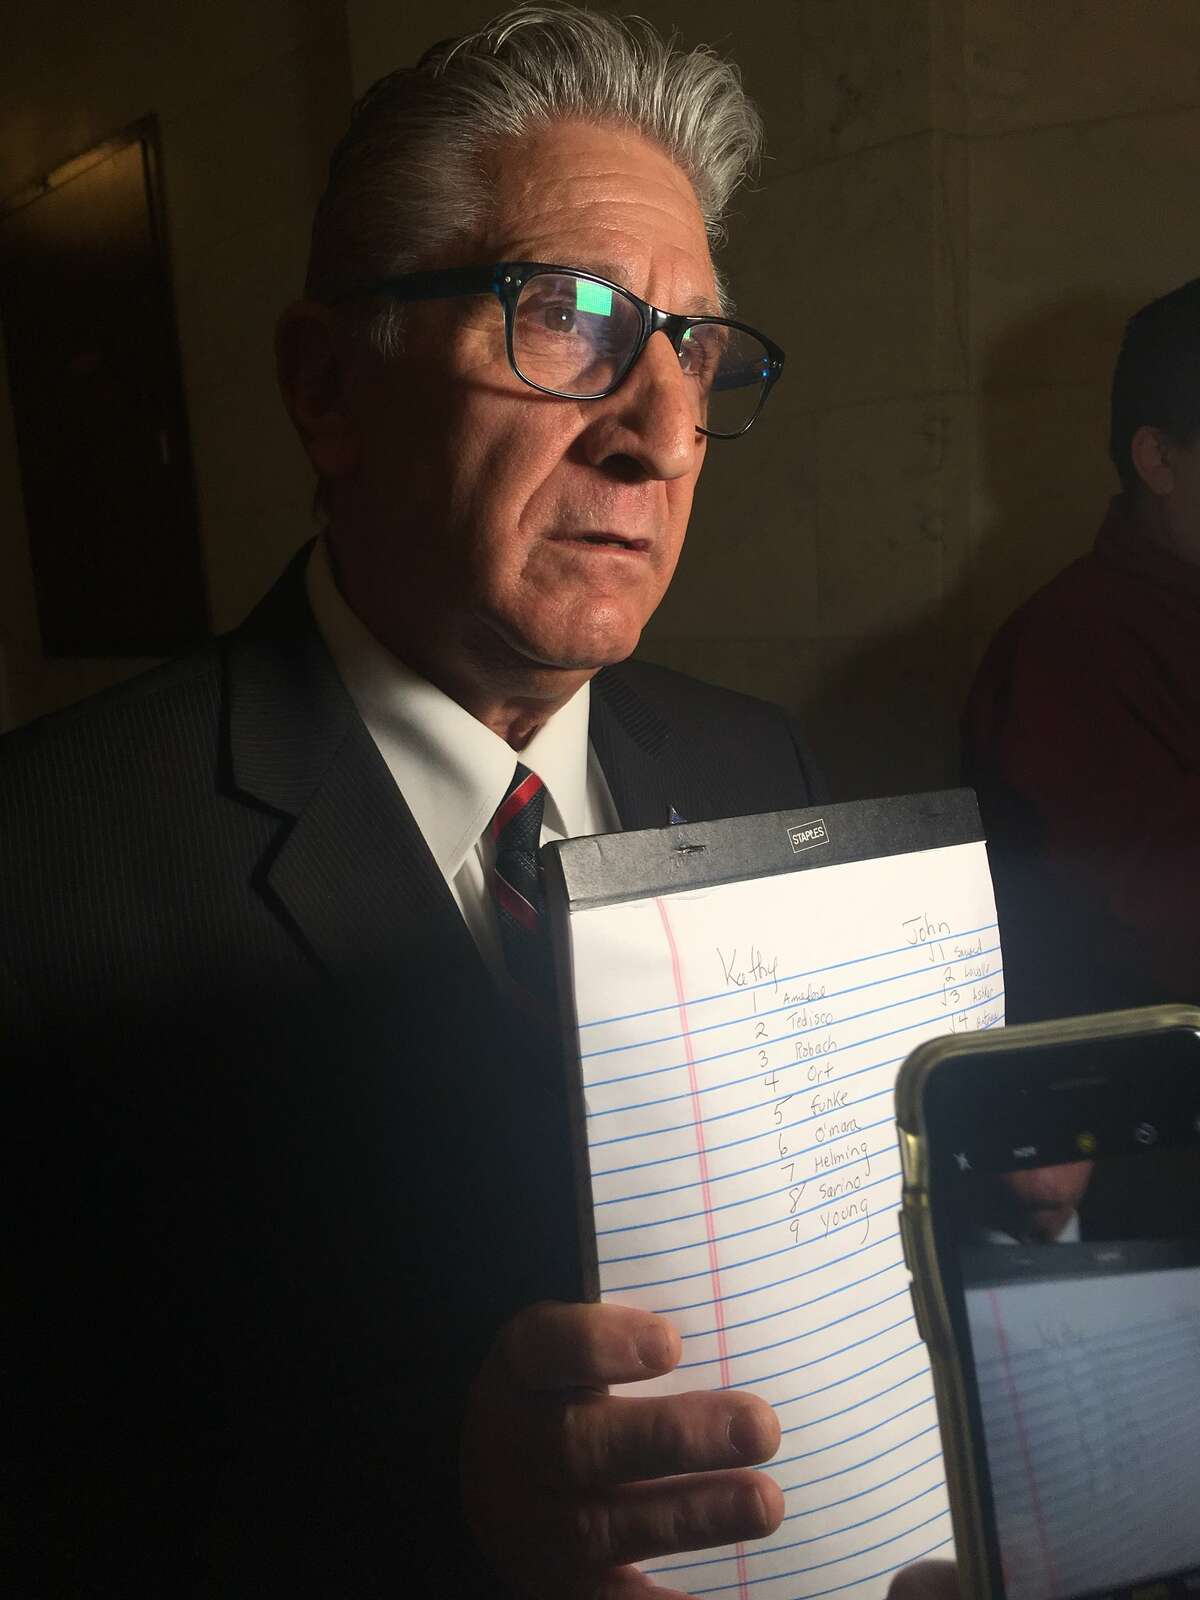 Sen. James Tedisco, R-Glenville, displays his vote tally from the GOP state Senate leadership race on Friday in the Capitol. He backed Catharine Young's unsuccessful challenge to John Flanagan. (David Lombardo / Times Union)